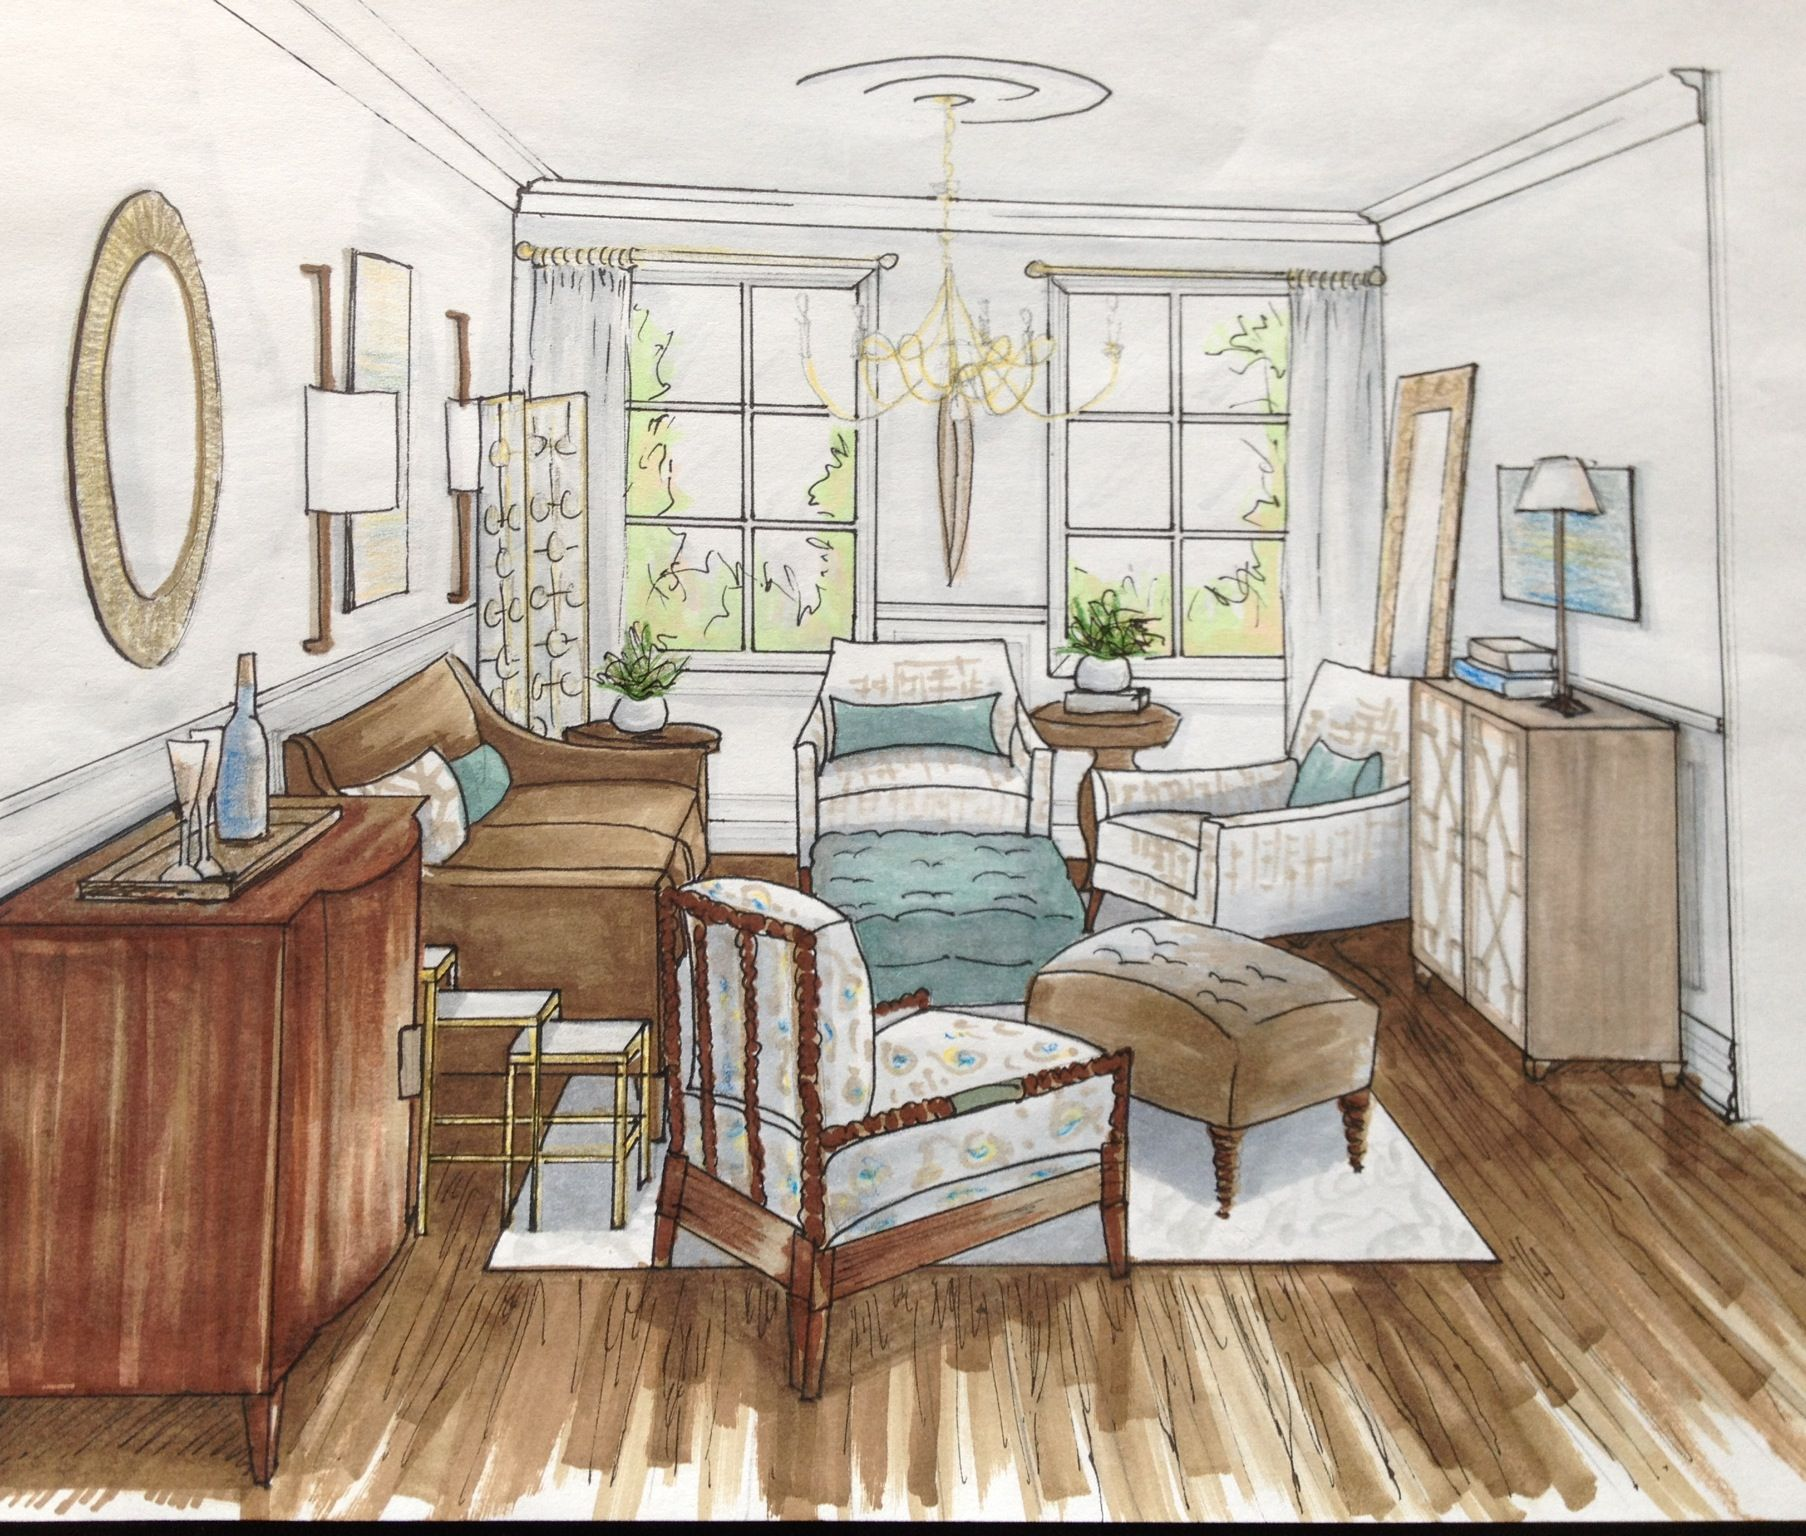 Living Room - Sketch  Desain interior, Interior, Desain